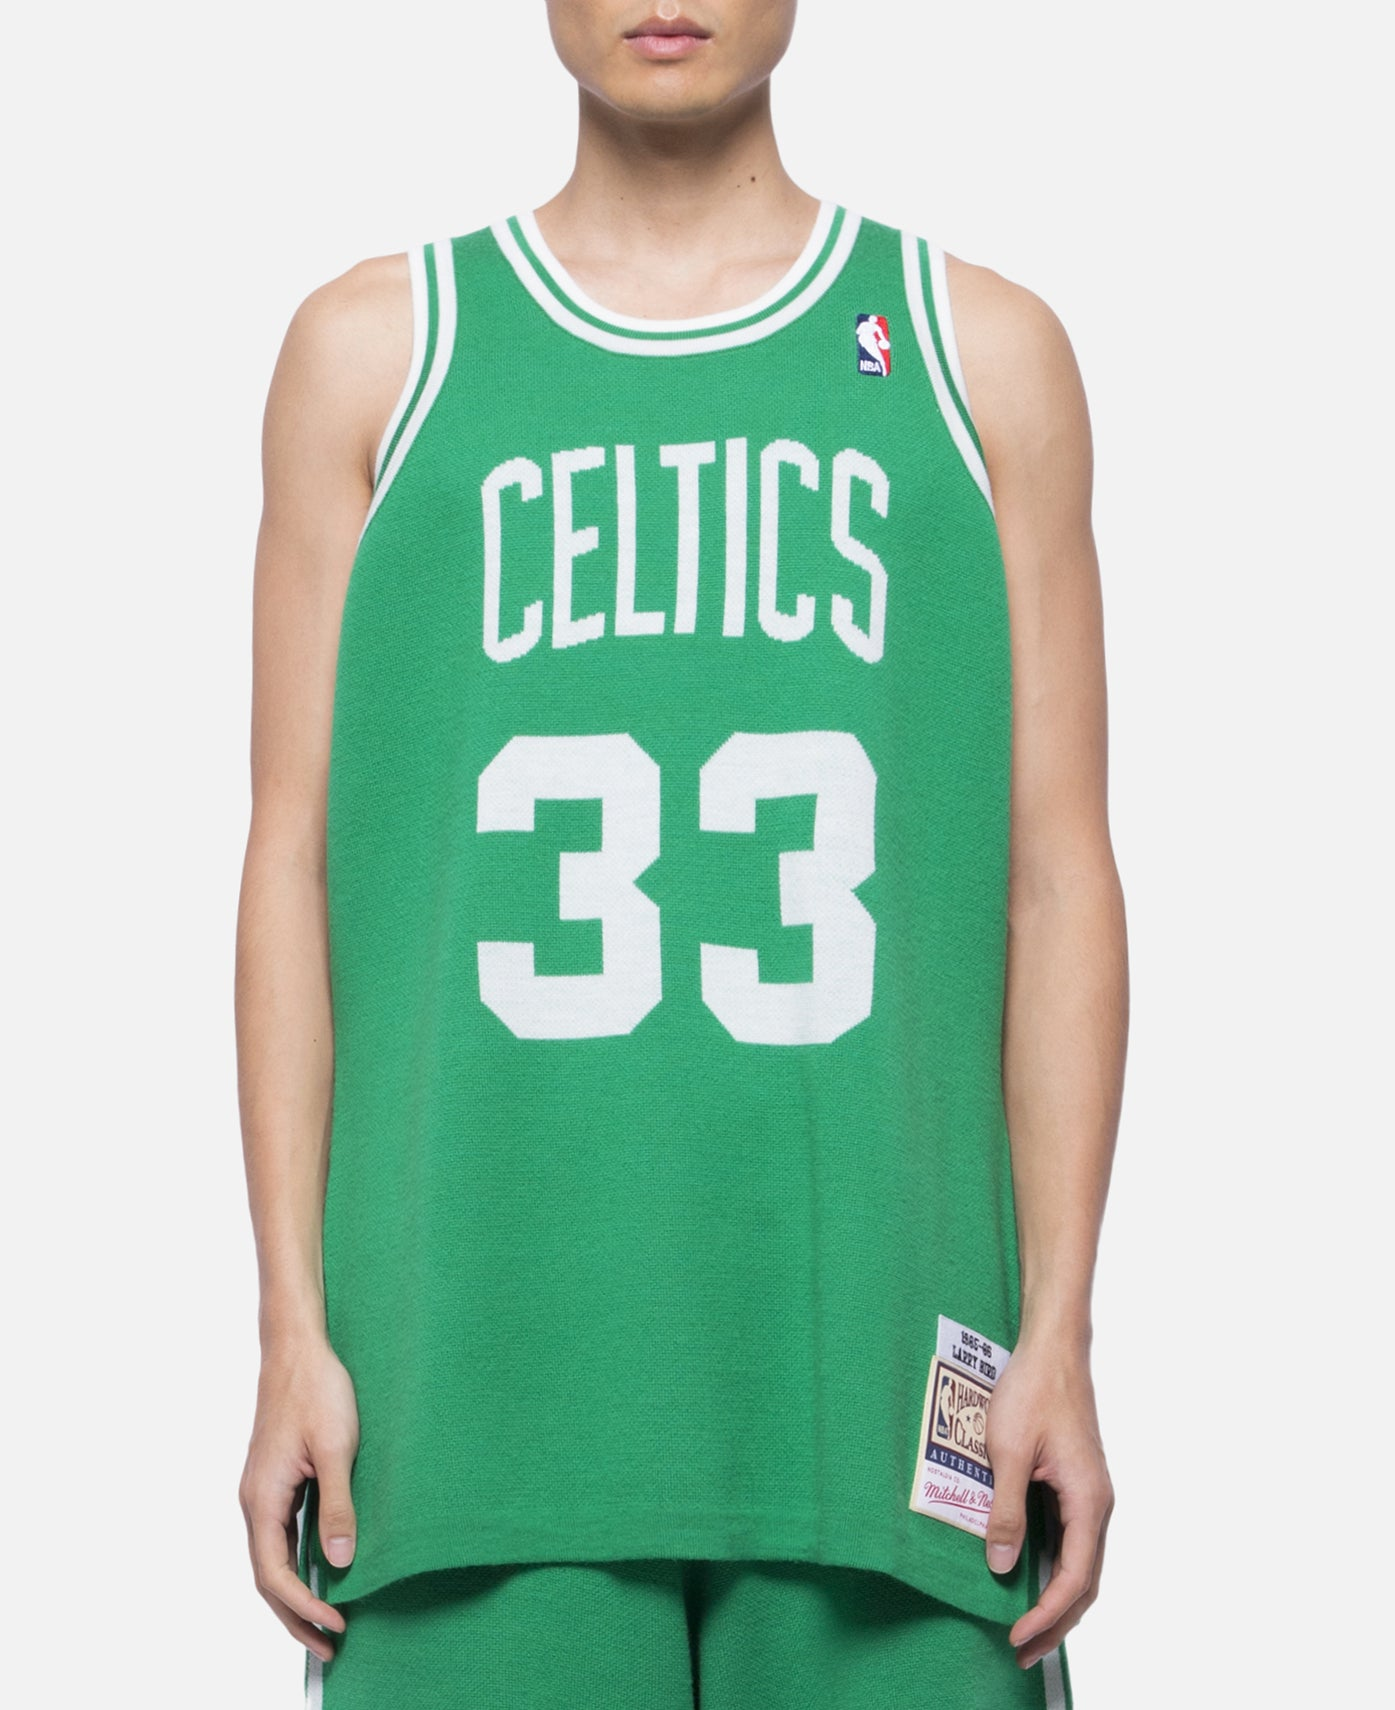 Celtics 85-86 Bird Knit Jersey